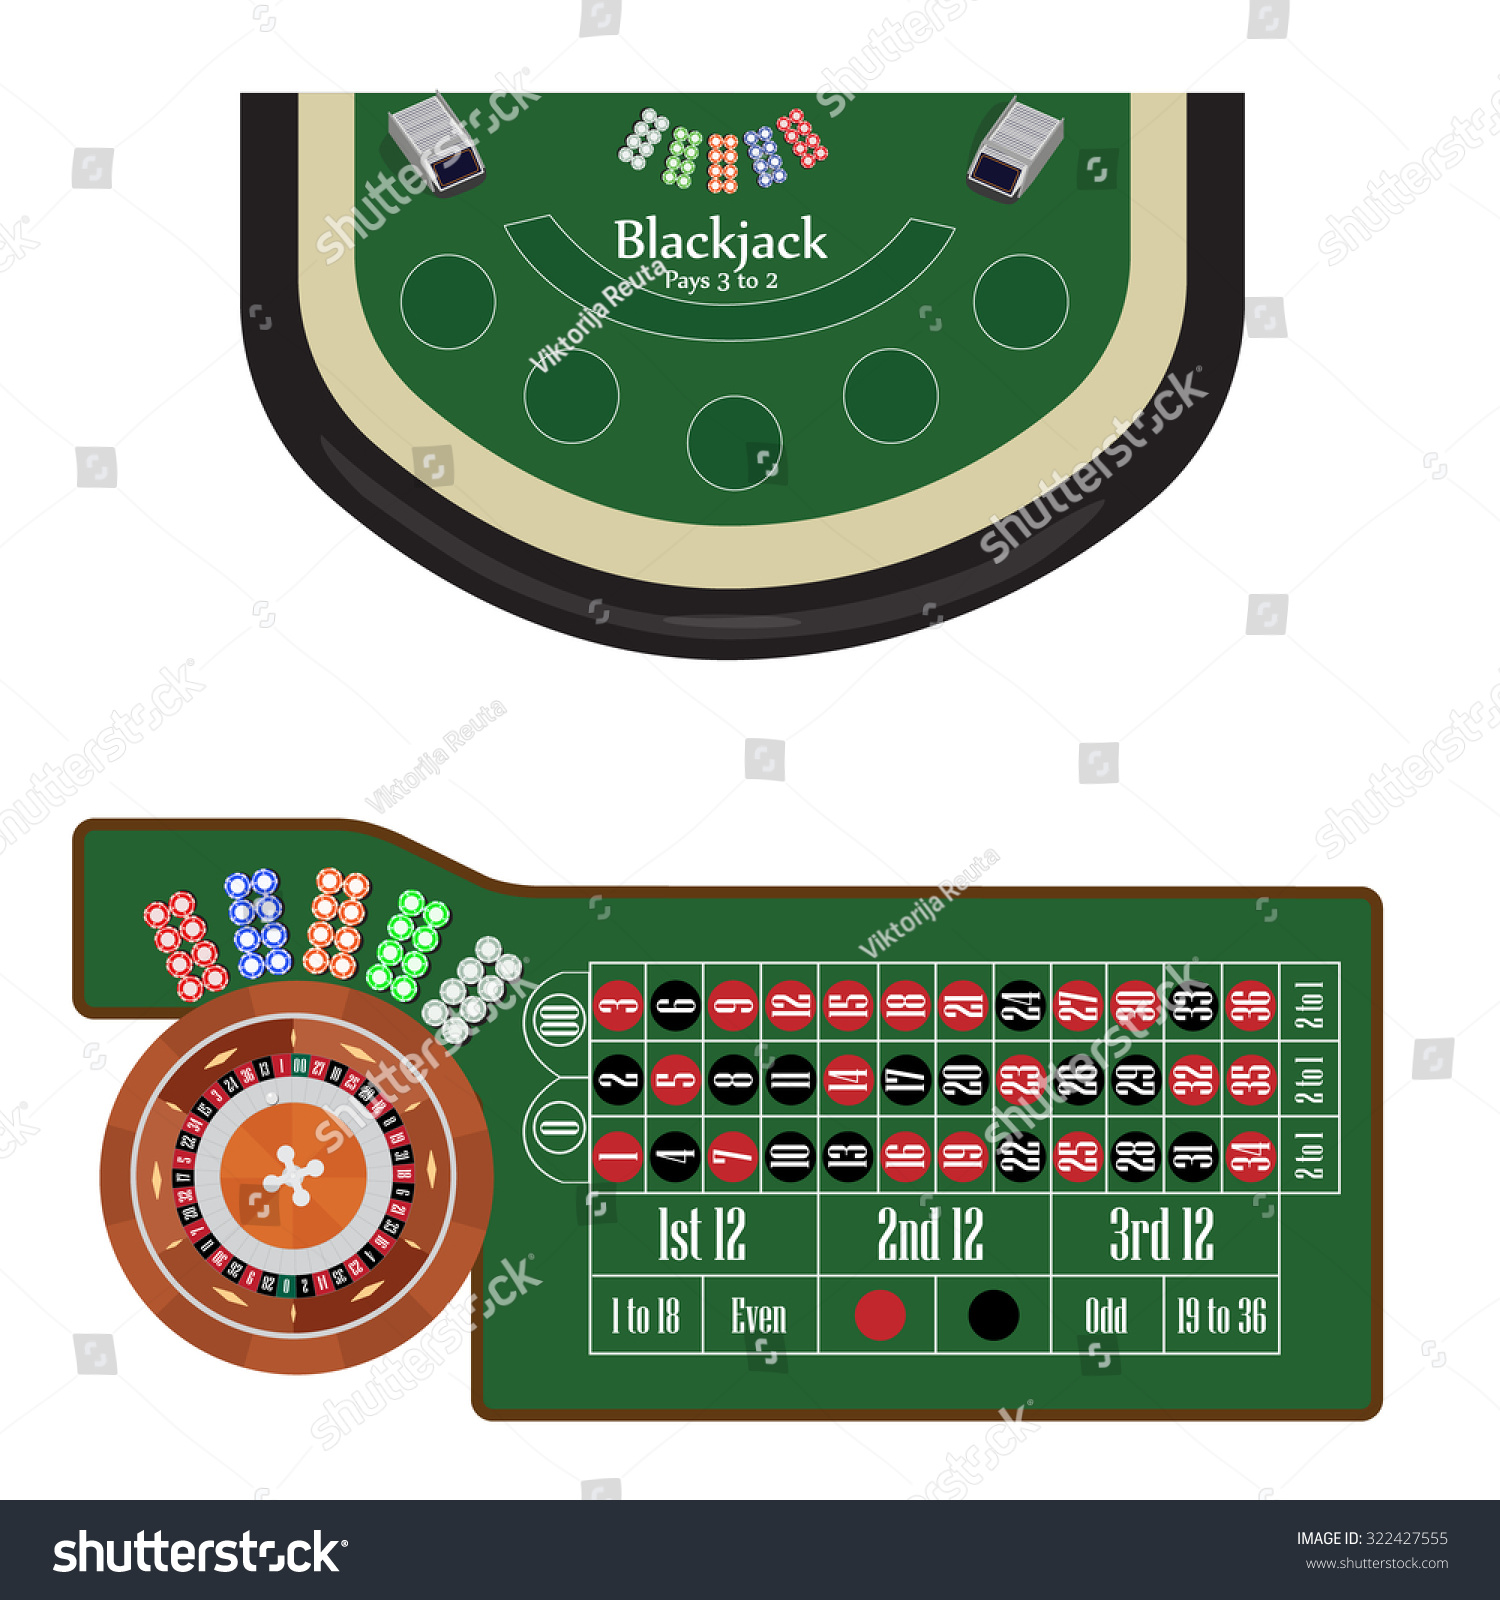 Traditional european roulette table vector illustration stock vector - American Roulette Table With Roulette Wheel And Ball Different Colors Chips Vector Illustration Blackjack